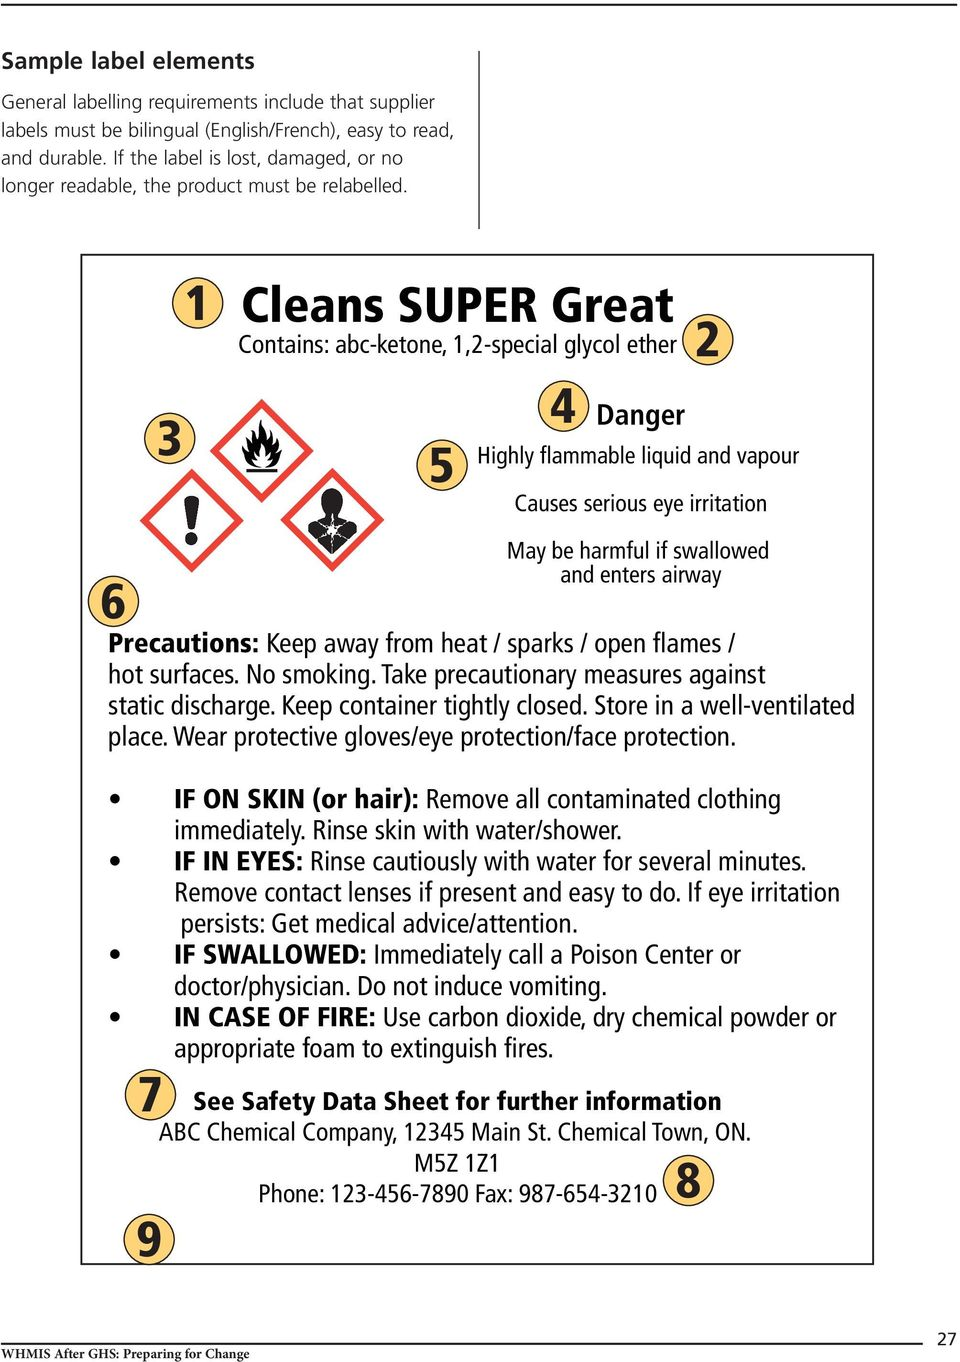 3 1 Cleans SUPER Great Contains: abc-ketone, 1,2-special glycol ether 5 4 Danger 2 Highly flammable liquid and vapour Causes serious eye irritation 6 May be harmful if swallowed and enters airway